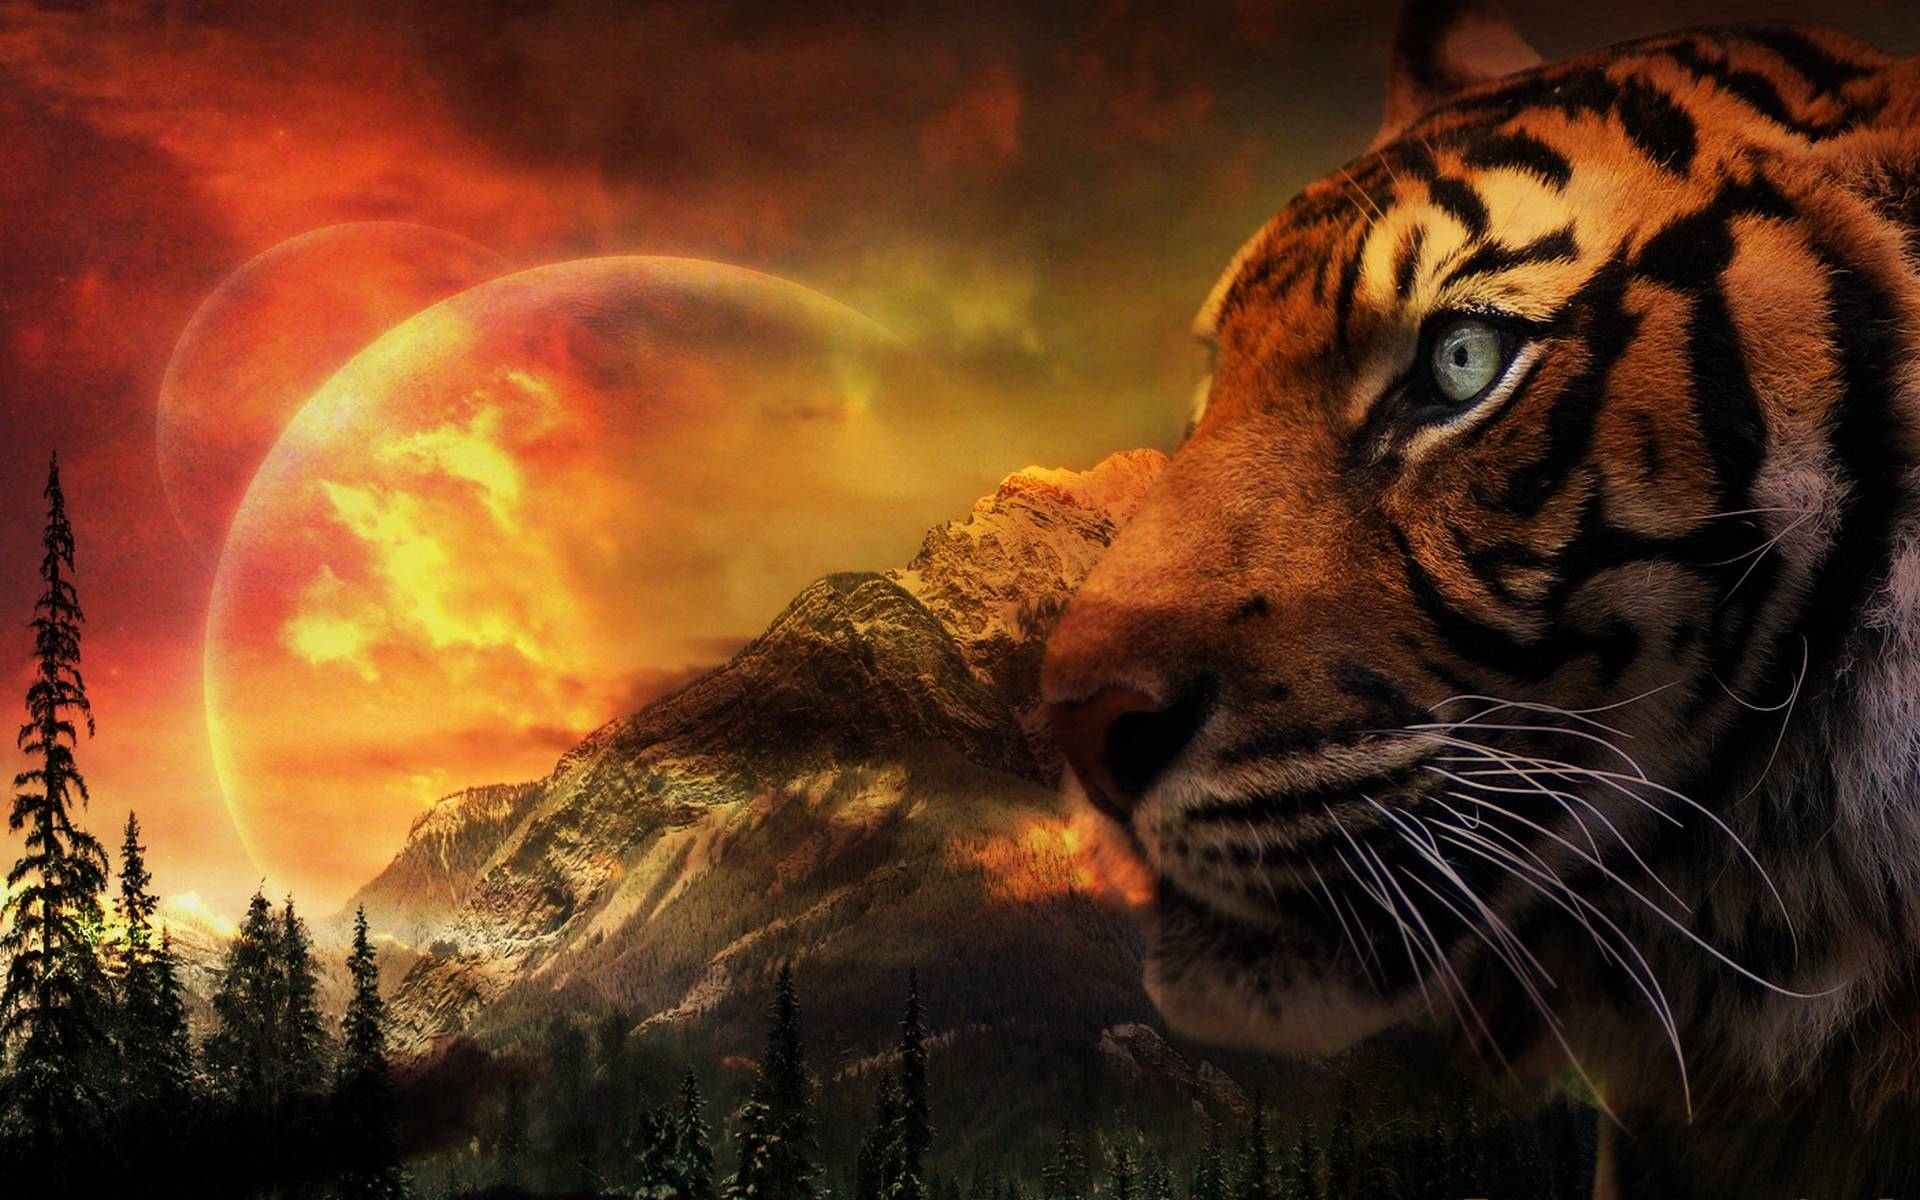 Fantasy landscape with tiger